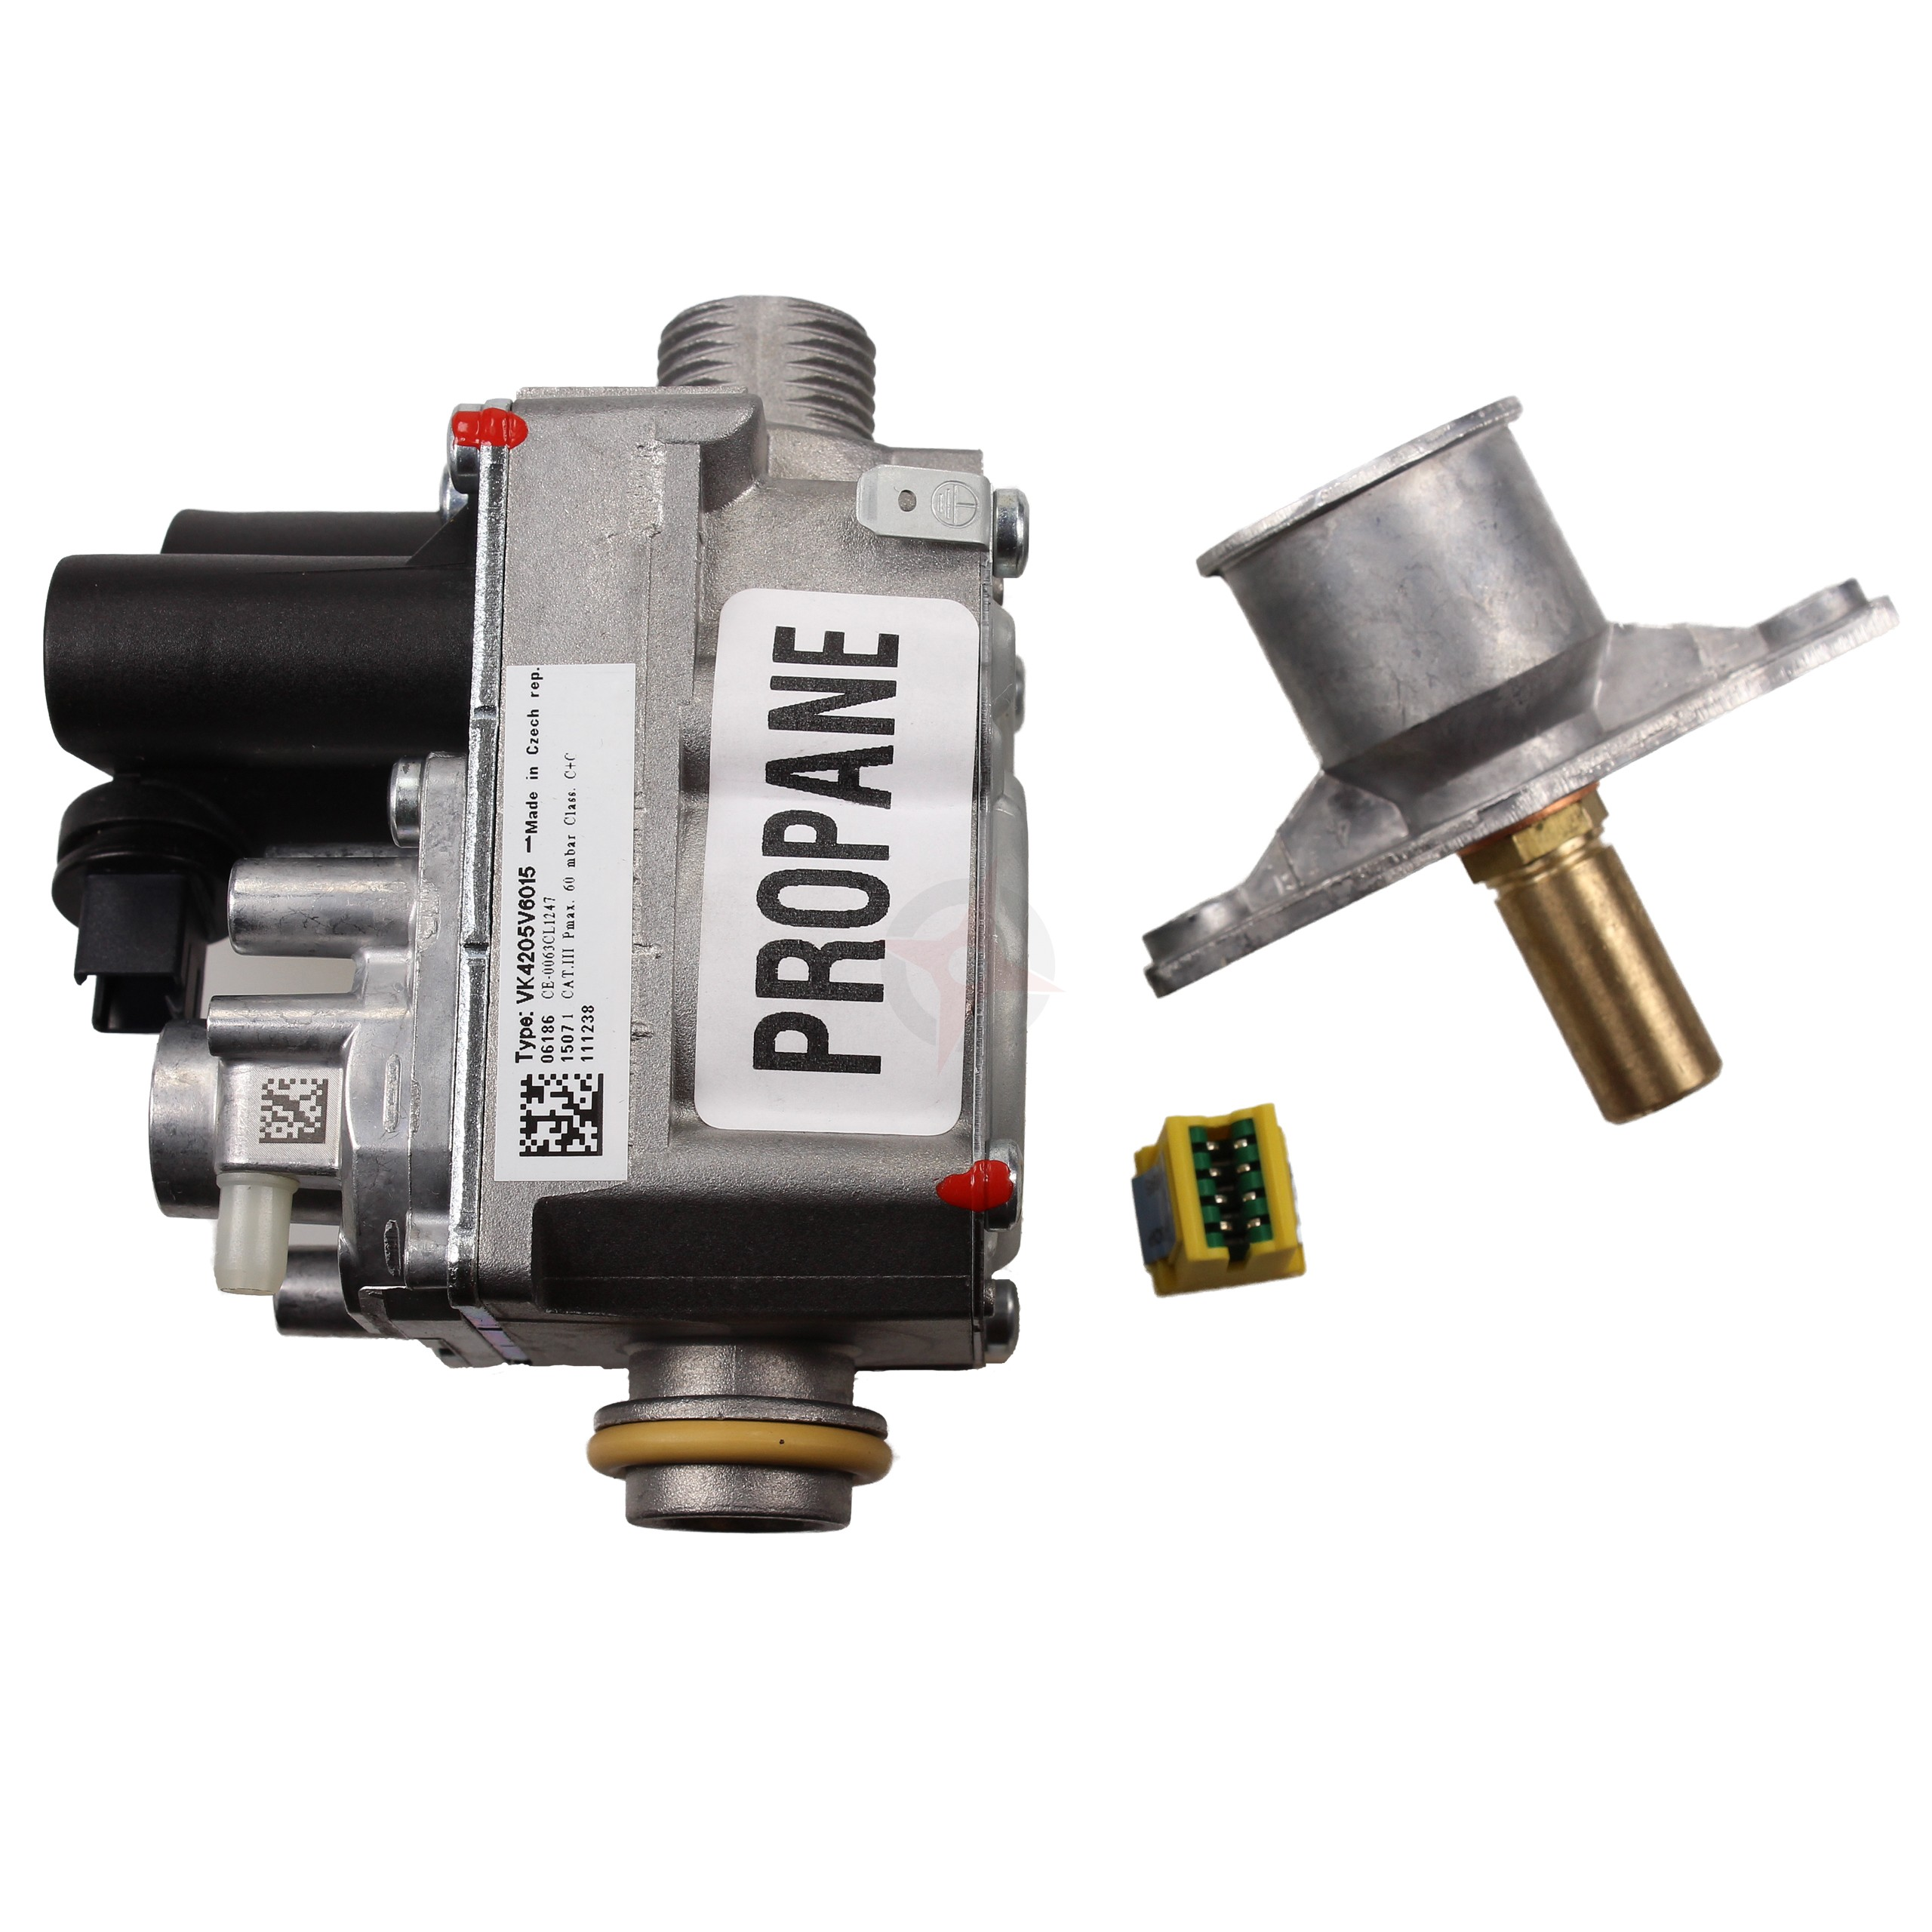 Ideal Independent Combi 30 NG-LPG Conversion Kit